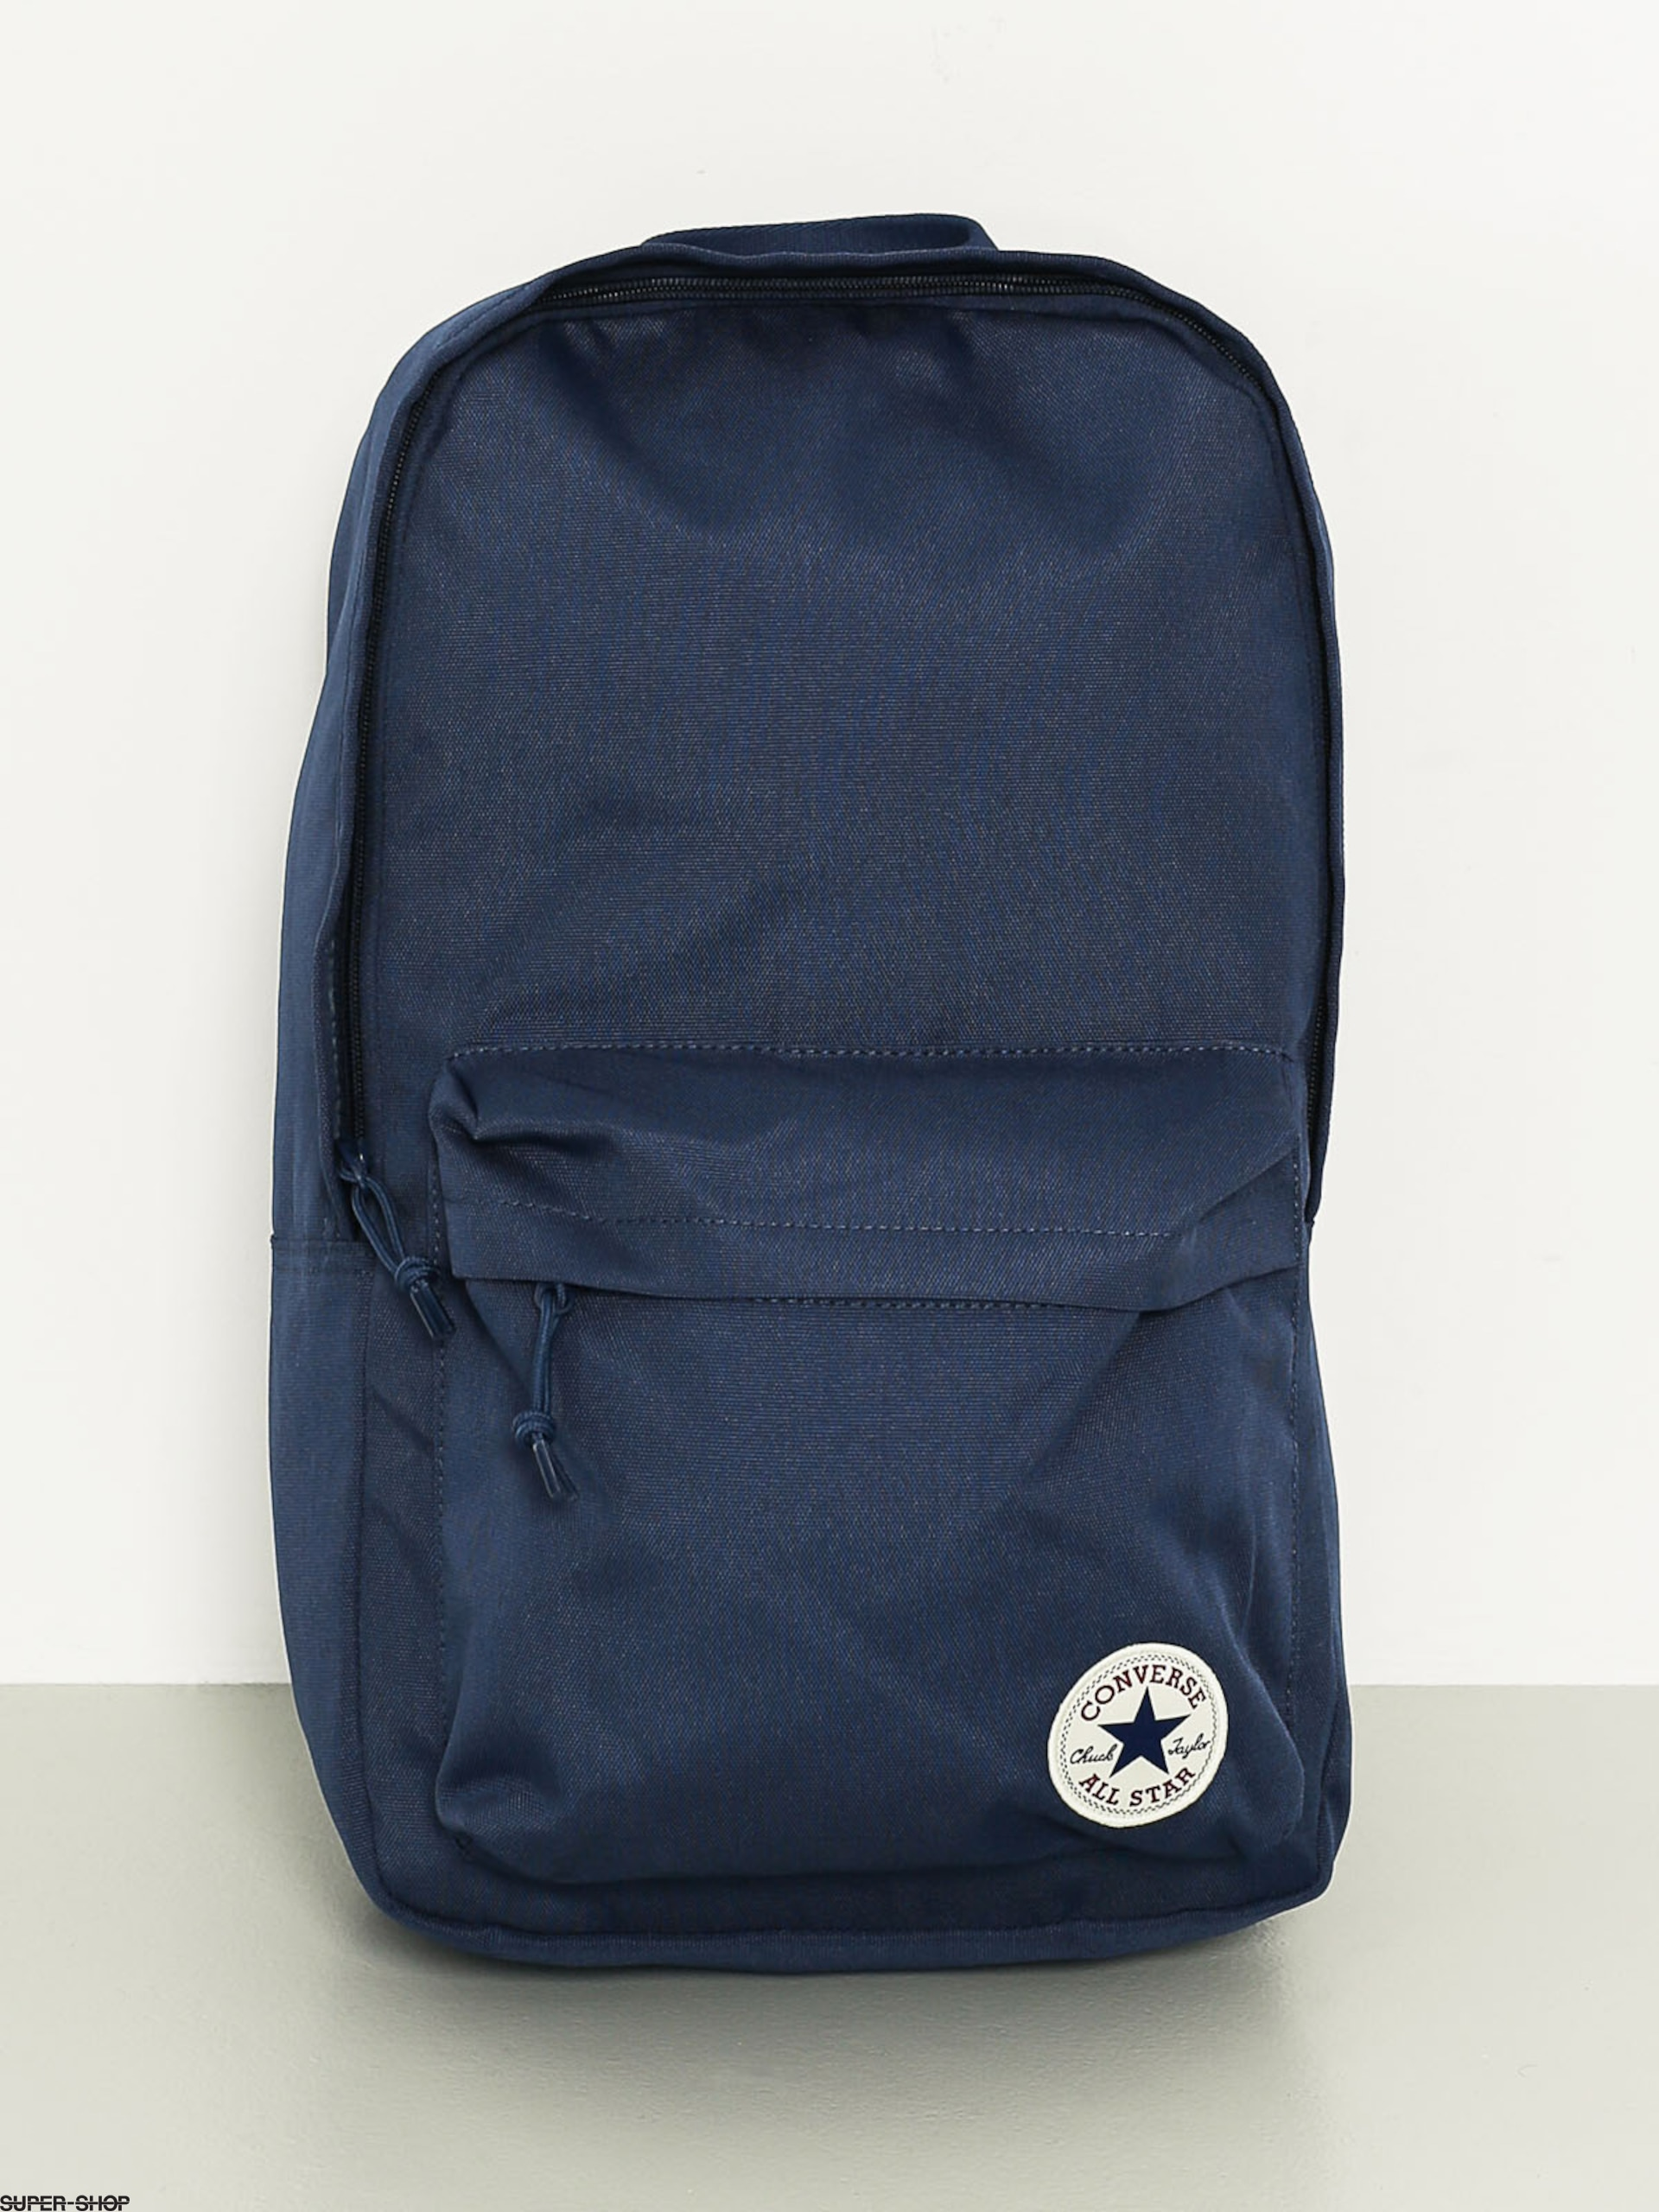 858776-w1920-converse-backpack-edc-poly-navy.jpg 99583447873e7